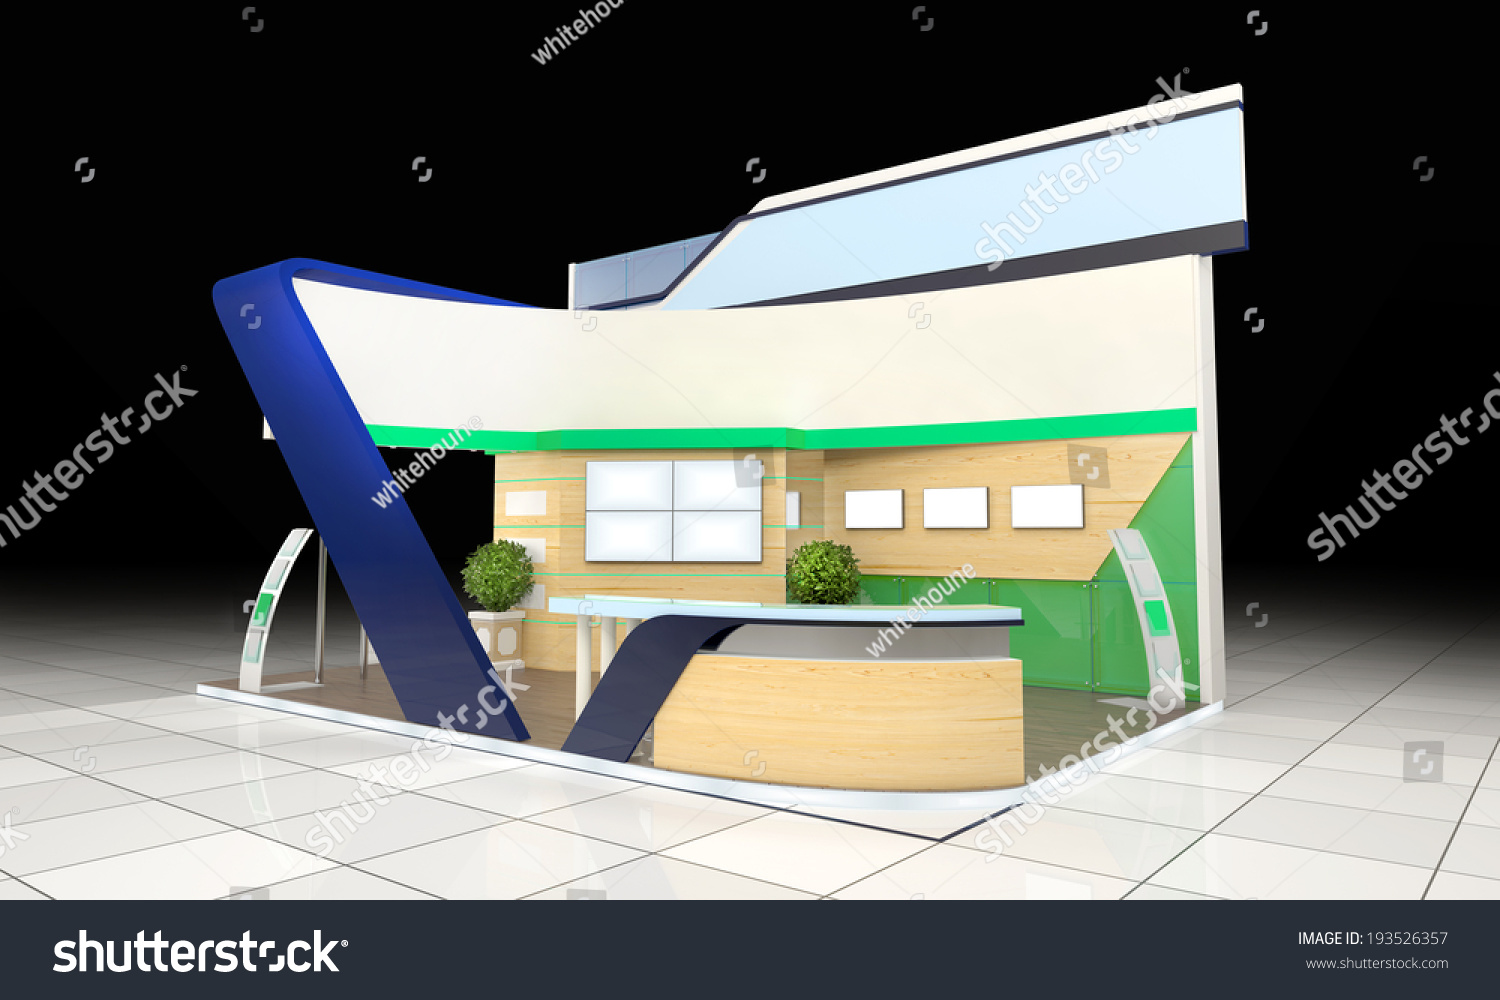 Exhibition Stand Design Illustrator : Modern business exhibition stand design blank stock